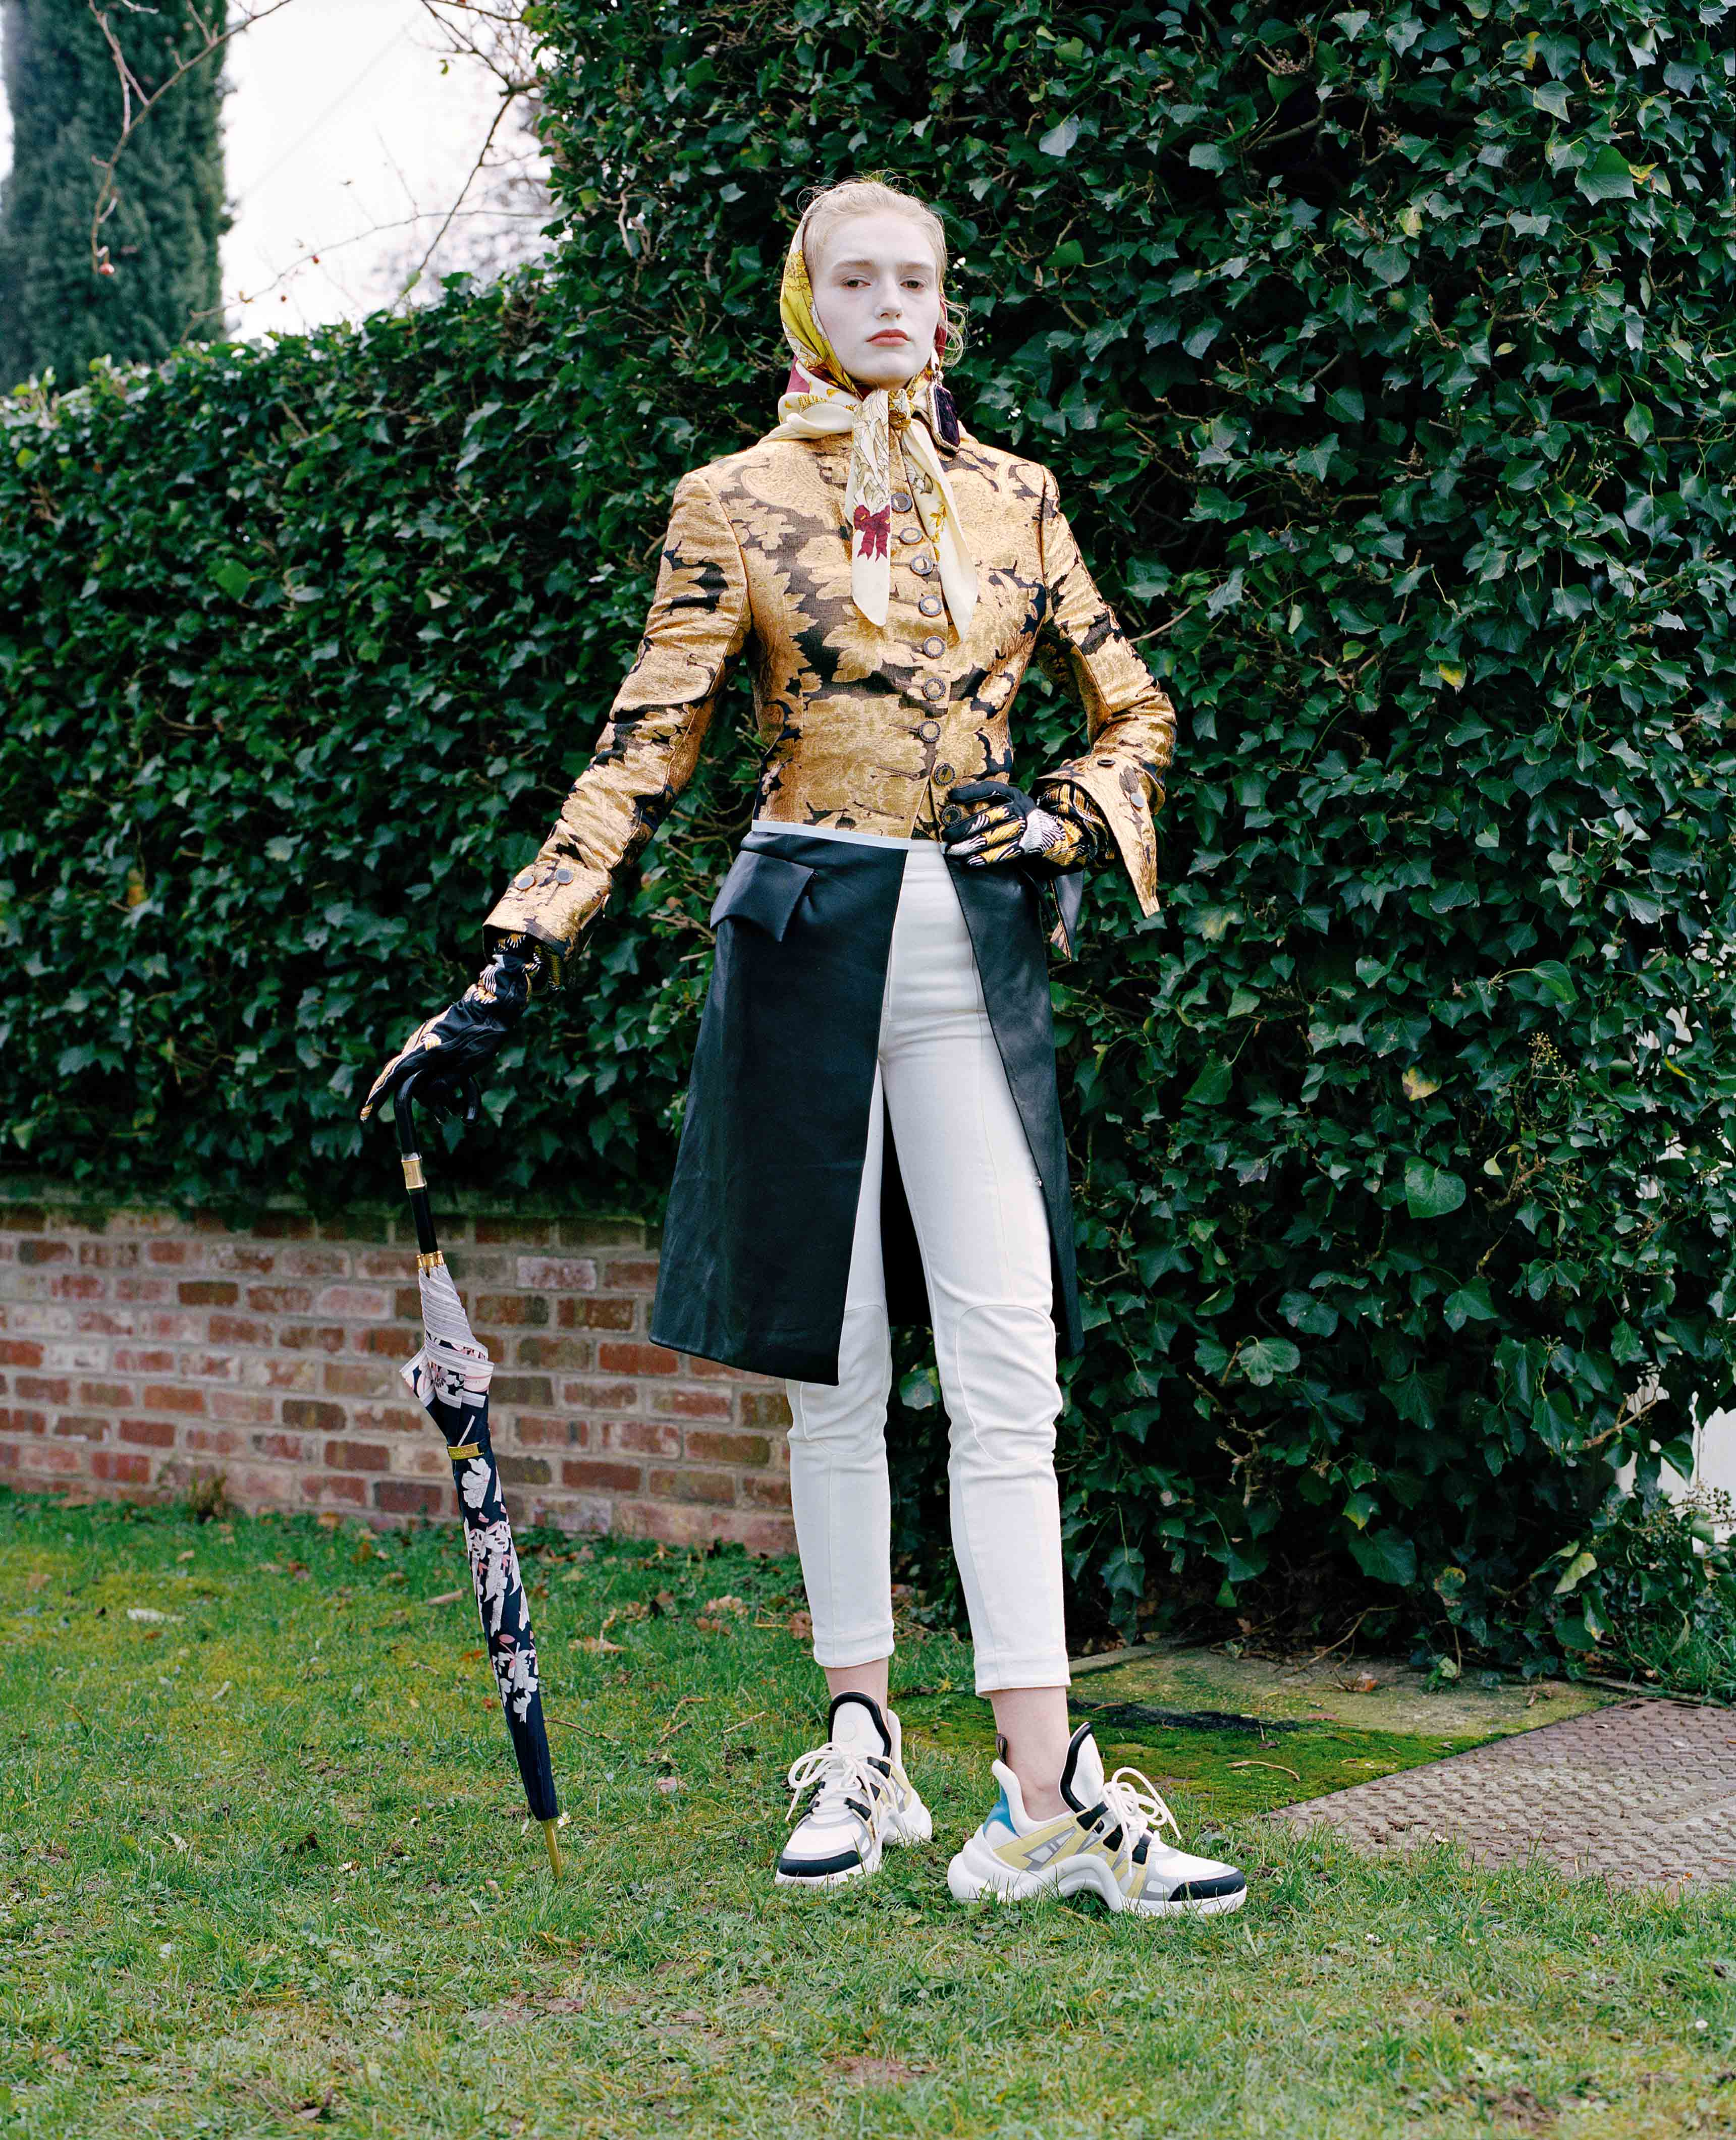 Silken embellished redingote, cotton trousers and snearkers, LOUIS VUITTON. Gloves, ROCHAS. Earring, BALENCIAGA. Vintage scarf, HERMÈS. Umbrella, LÉONARD.